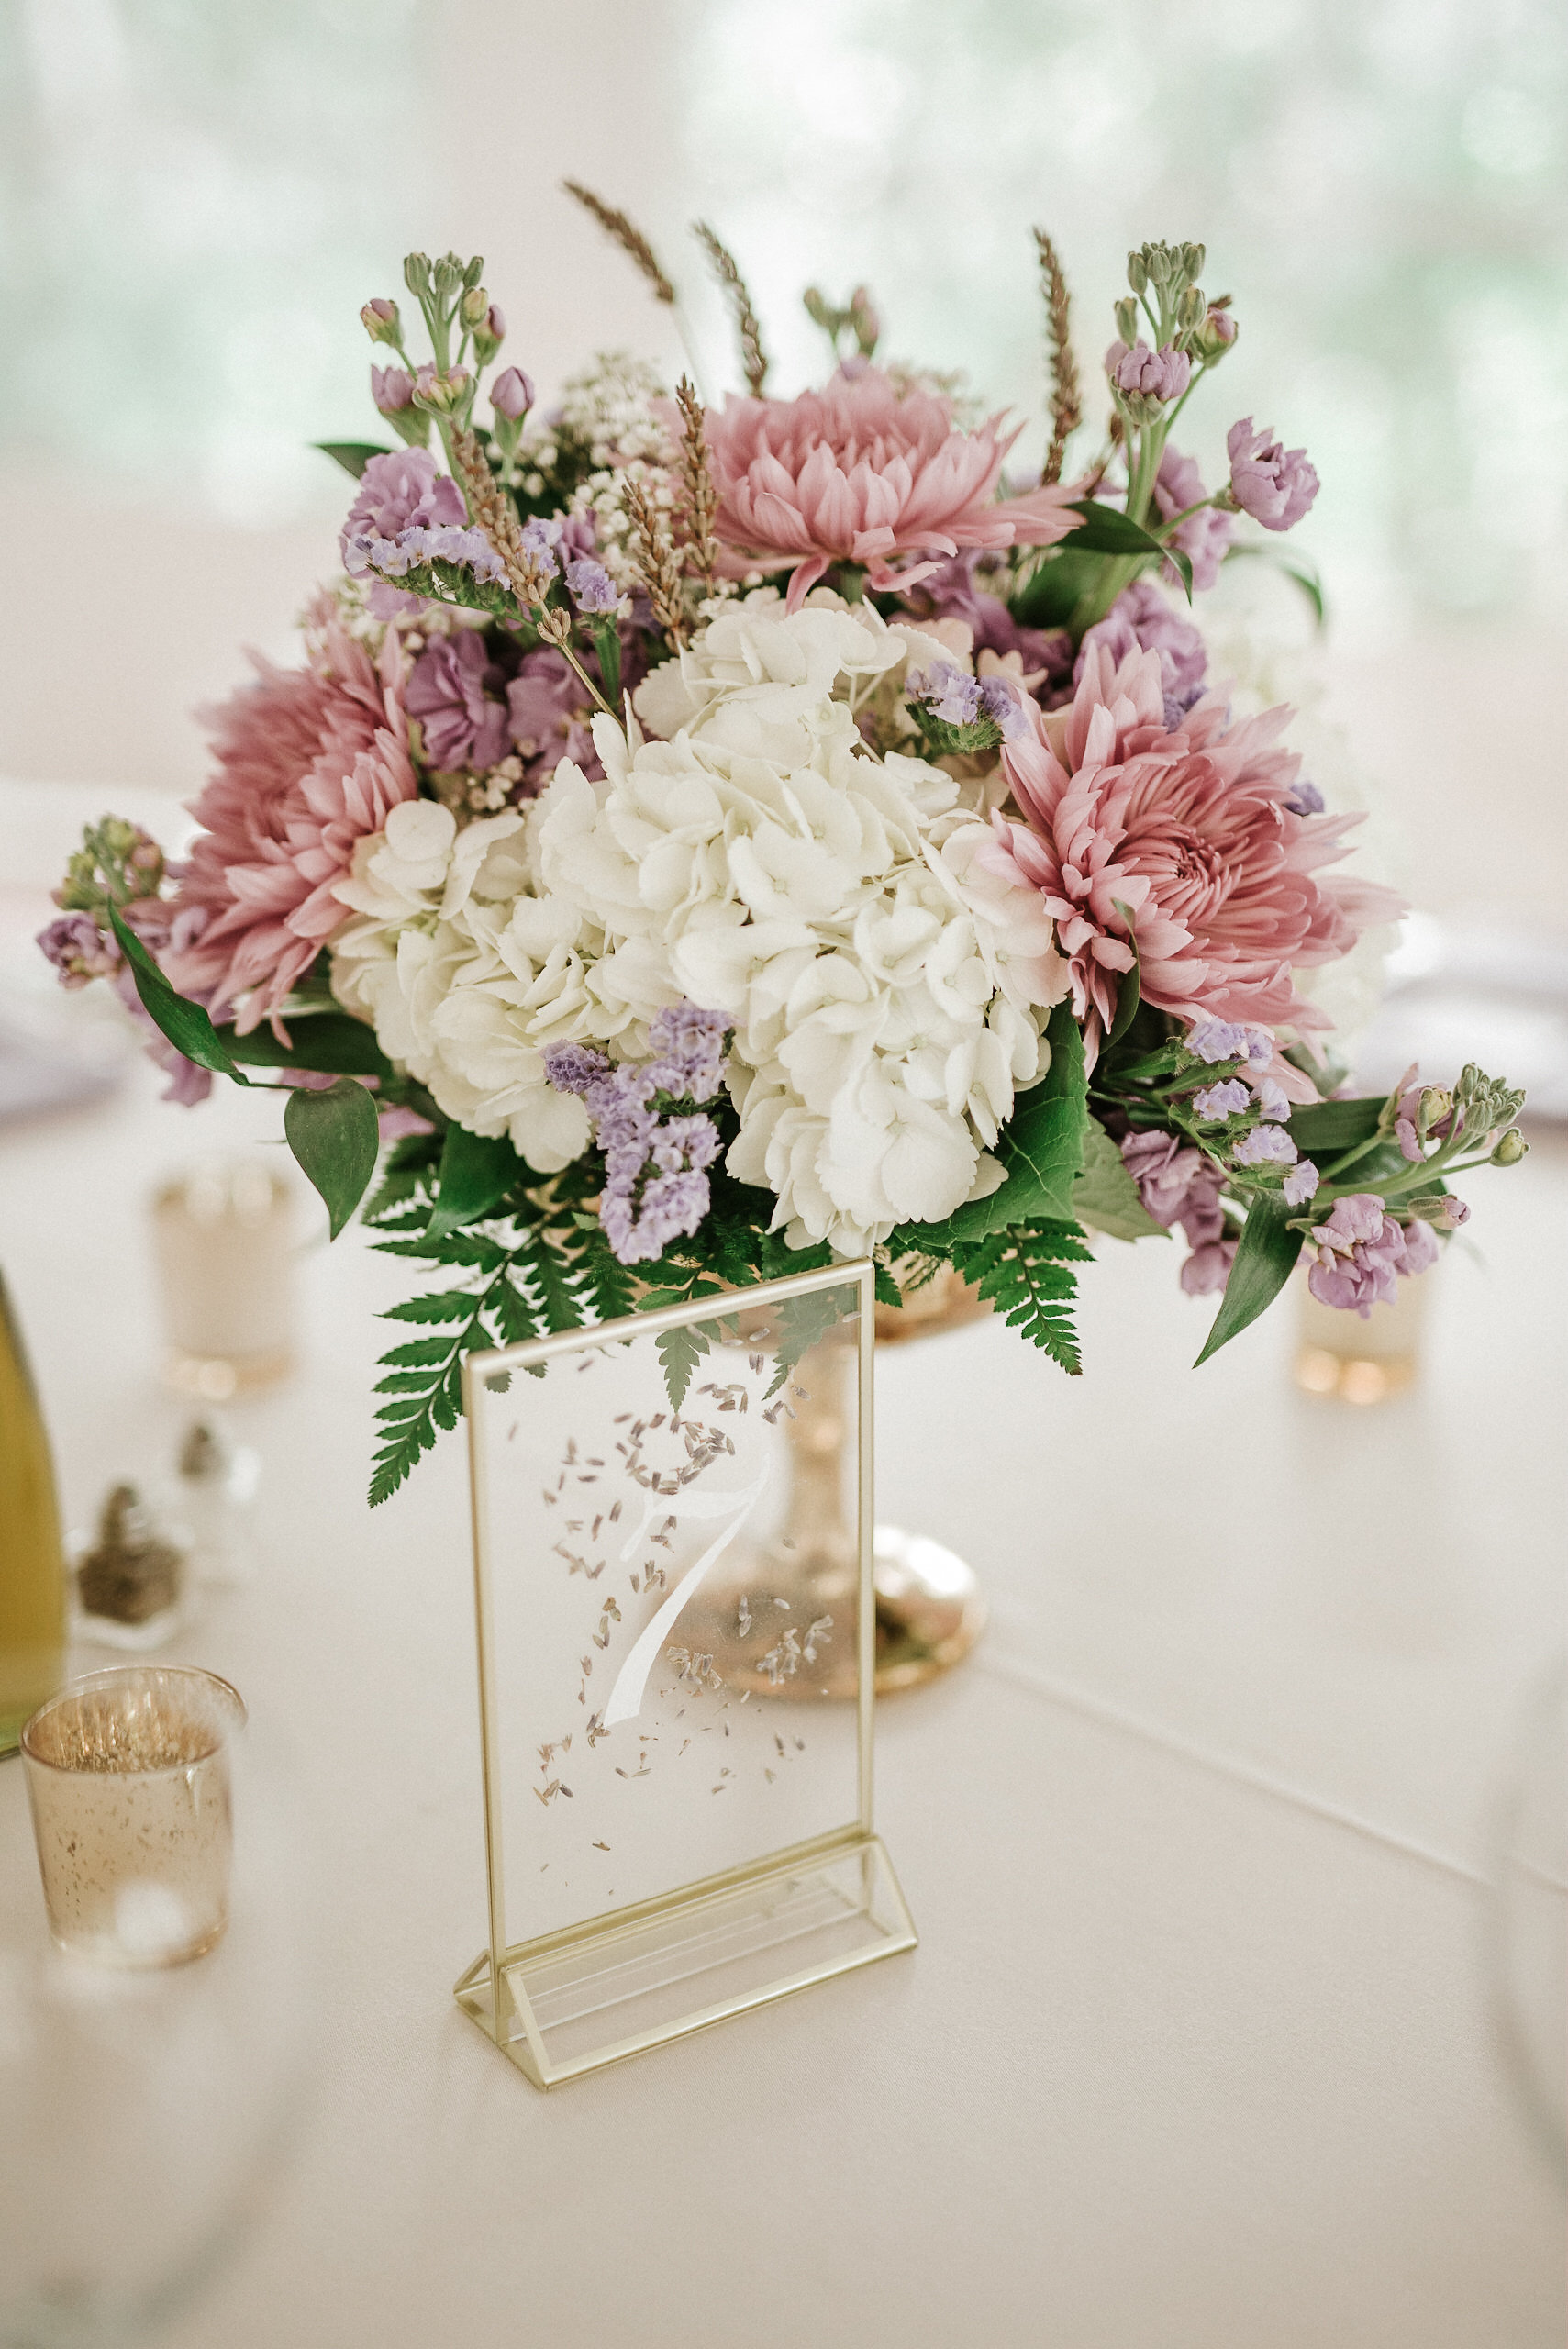 Flower arrangement at spring wedding reception